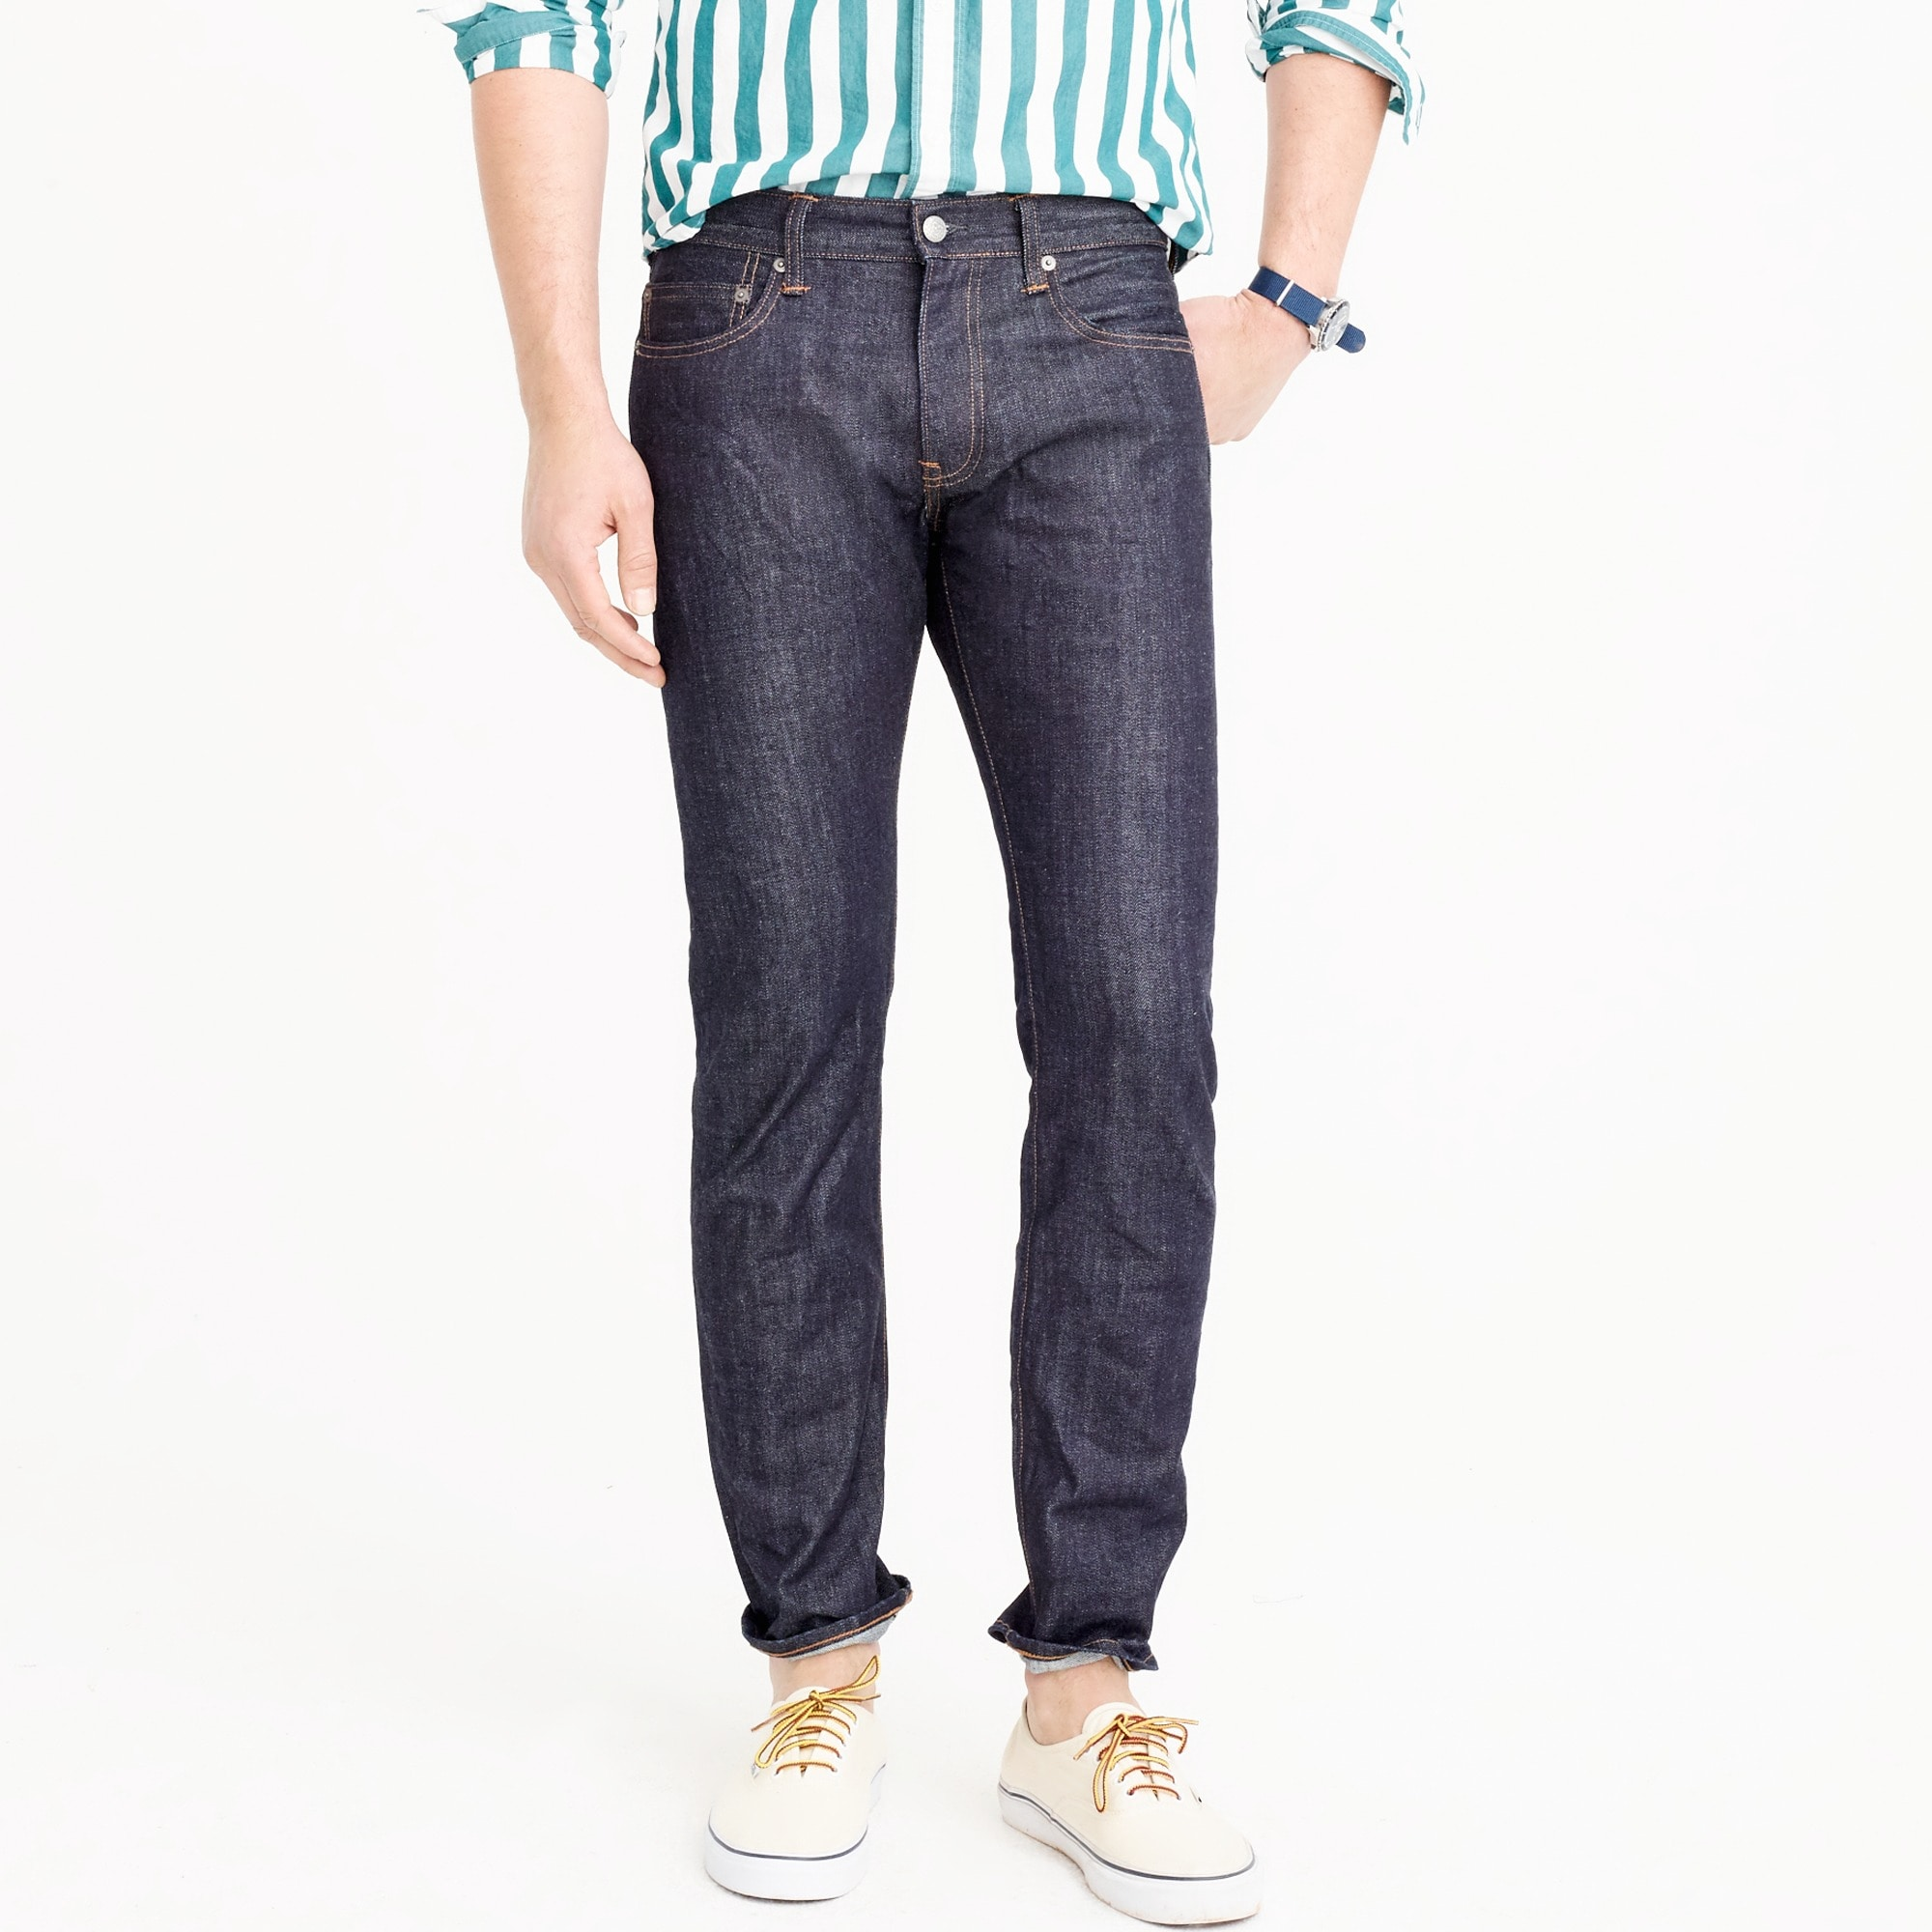 men's 484 slim-fit jean in riverton wash - men's pants